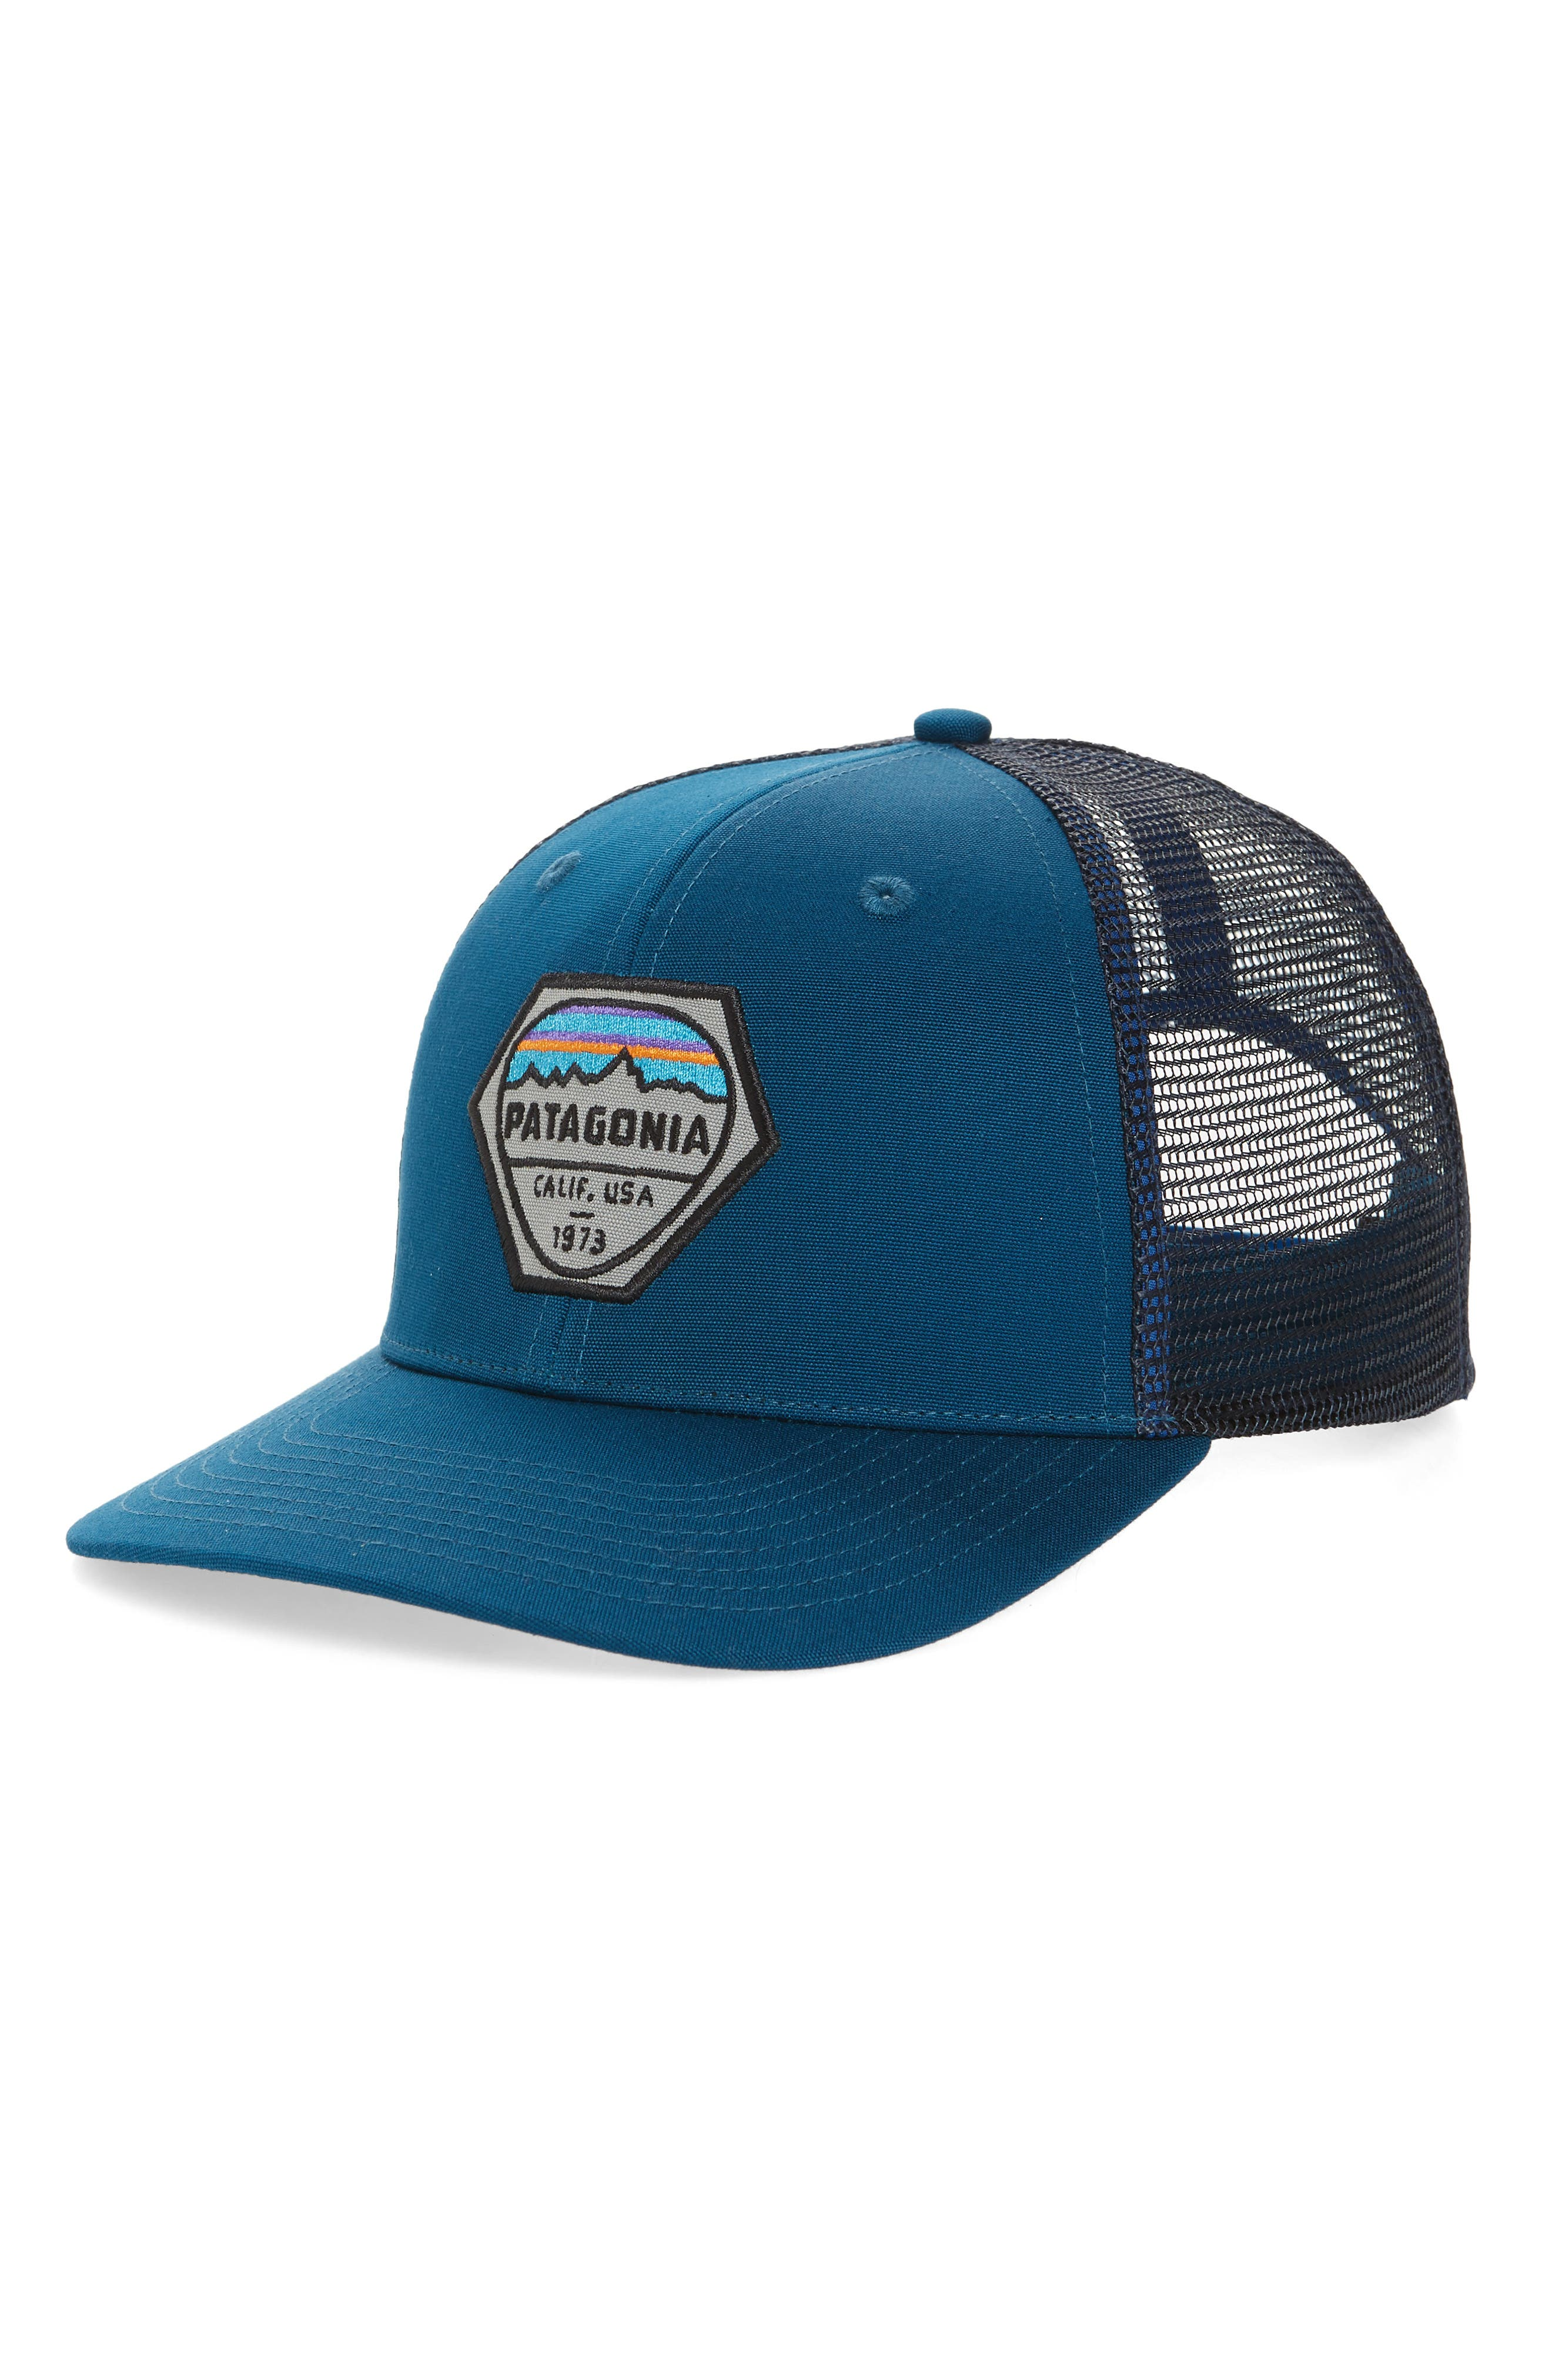 fcedf49cf30 Patagonia Fitz Roy Hex Trucker Cap - Blue In Big Sur Blue